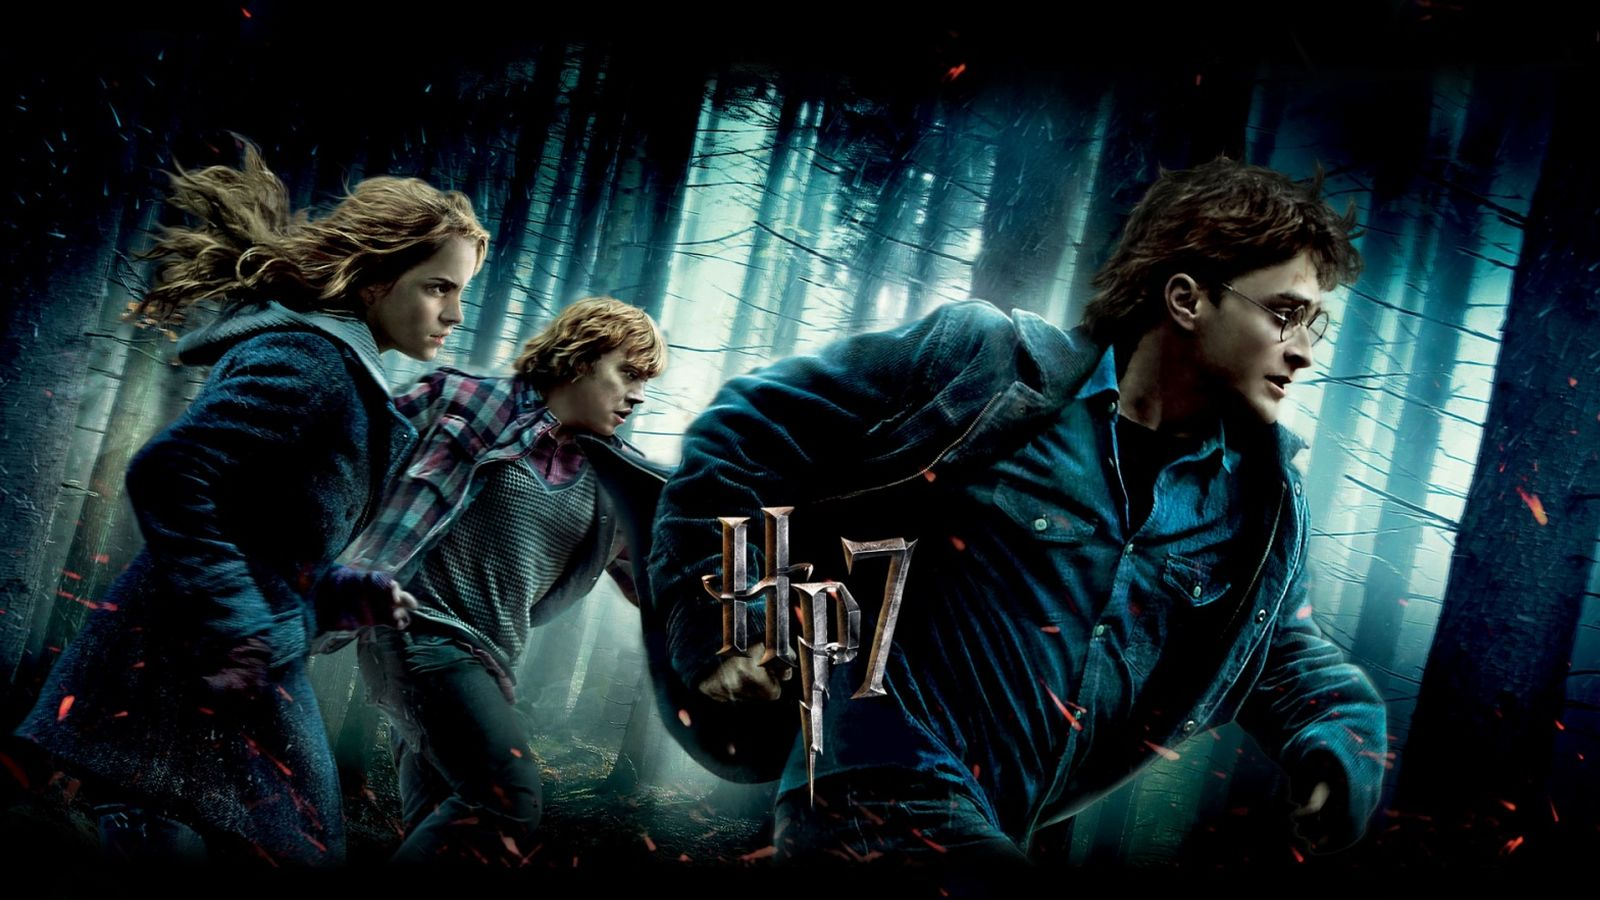 hp7-wallpaper-1600x900.jpg